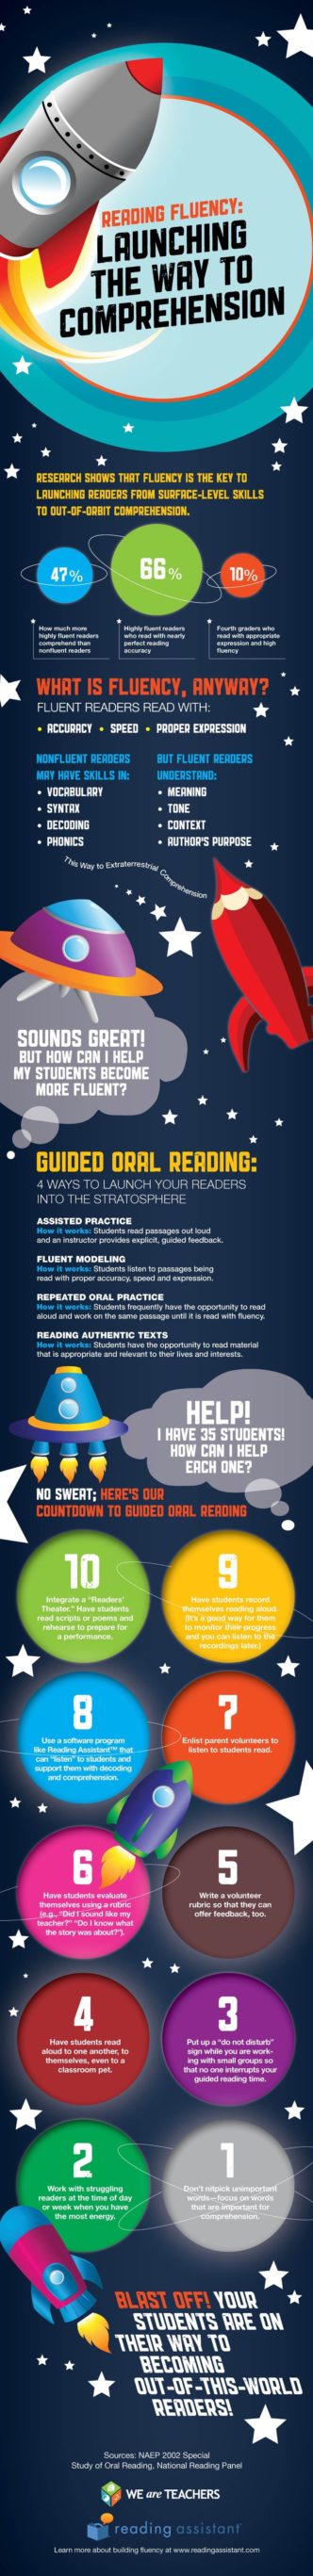 Tips for improving reading fluency #infographic